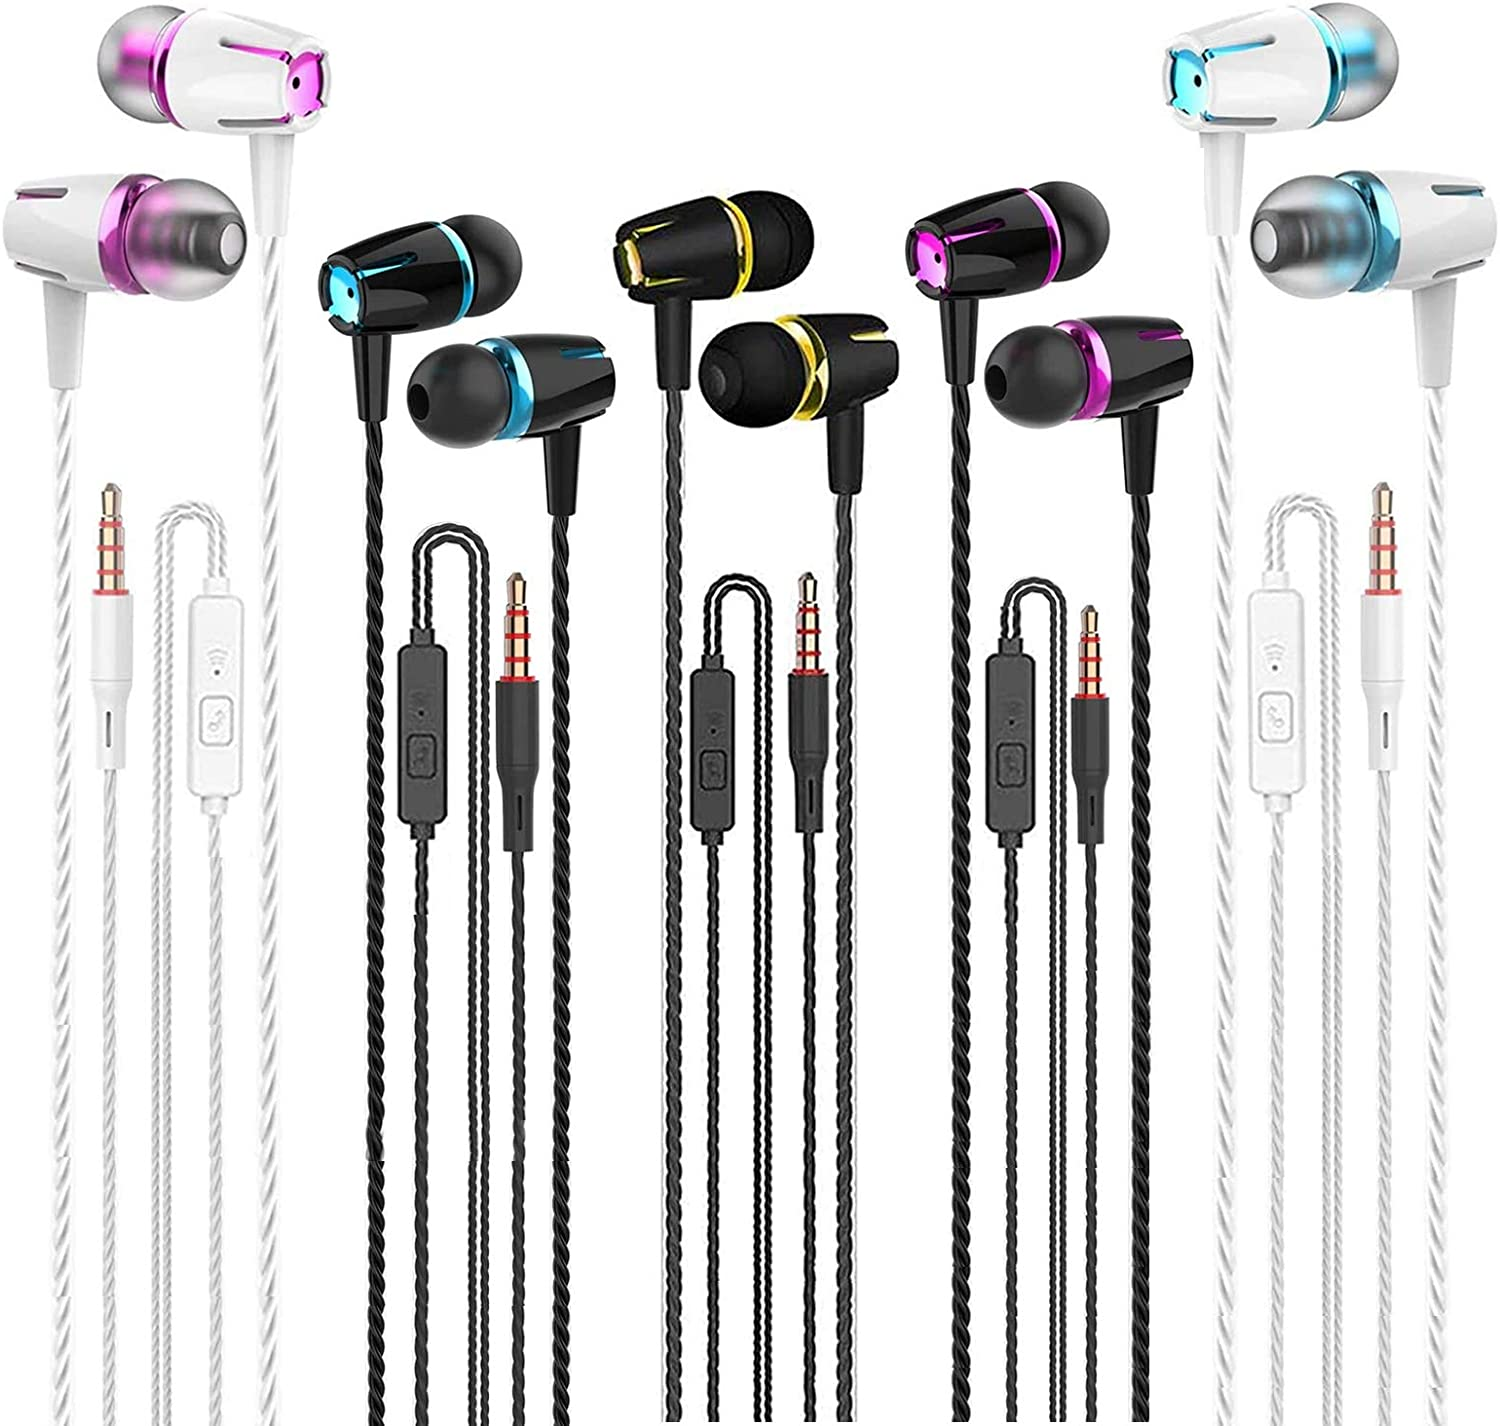 Earbuds with Microphone, 5-Pack of Wired Earphones, Noise-Cancelling in-Ear Earbuds for iPhone, iPad, iPod, Mp3 and Most Android Smartphones with 3.5mm Connector